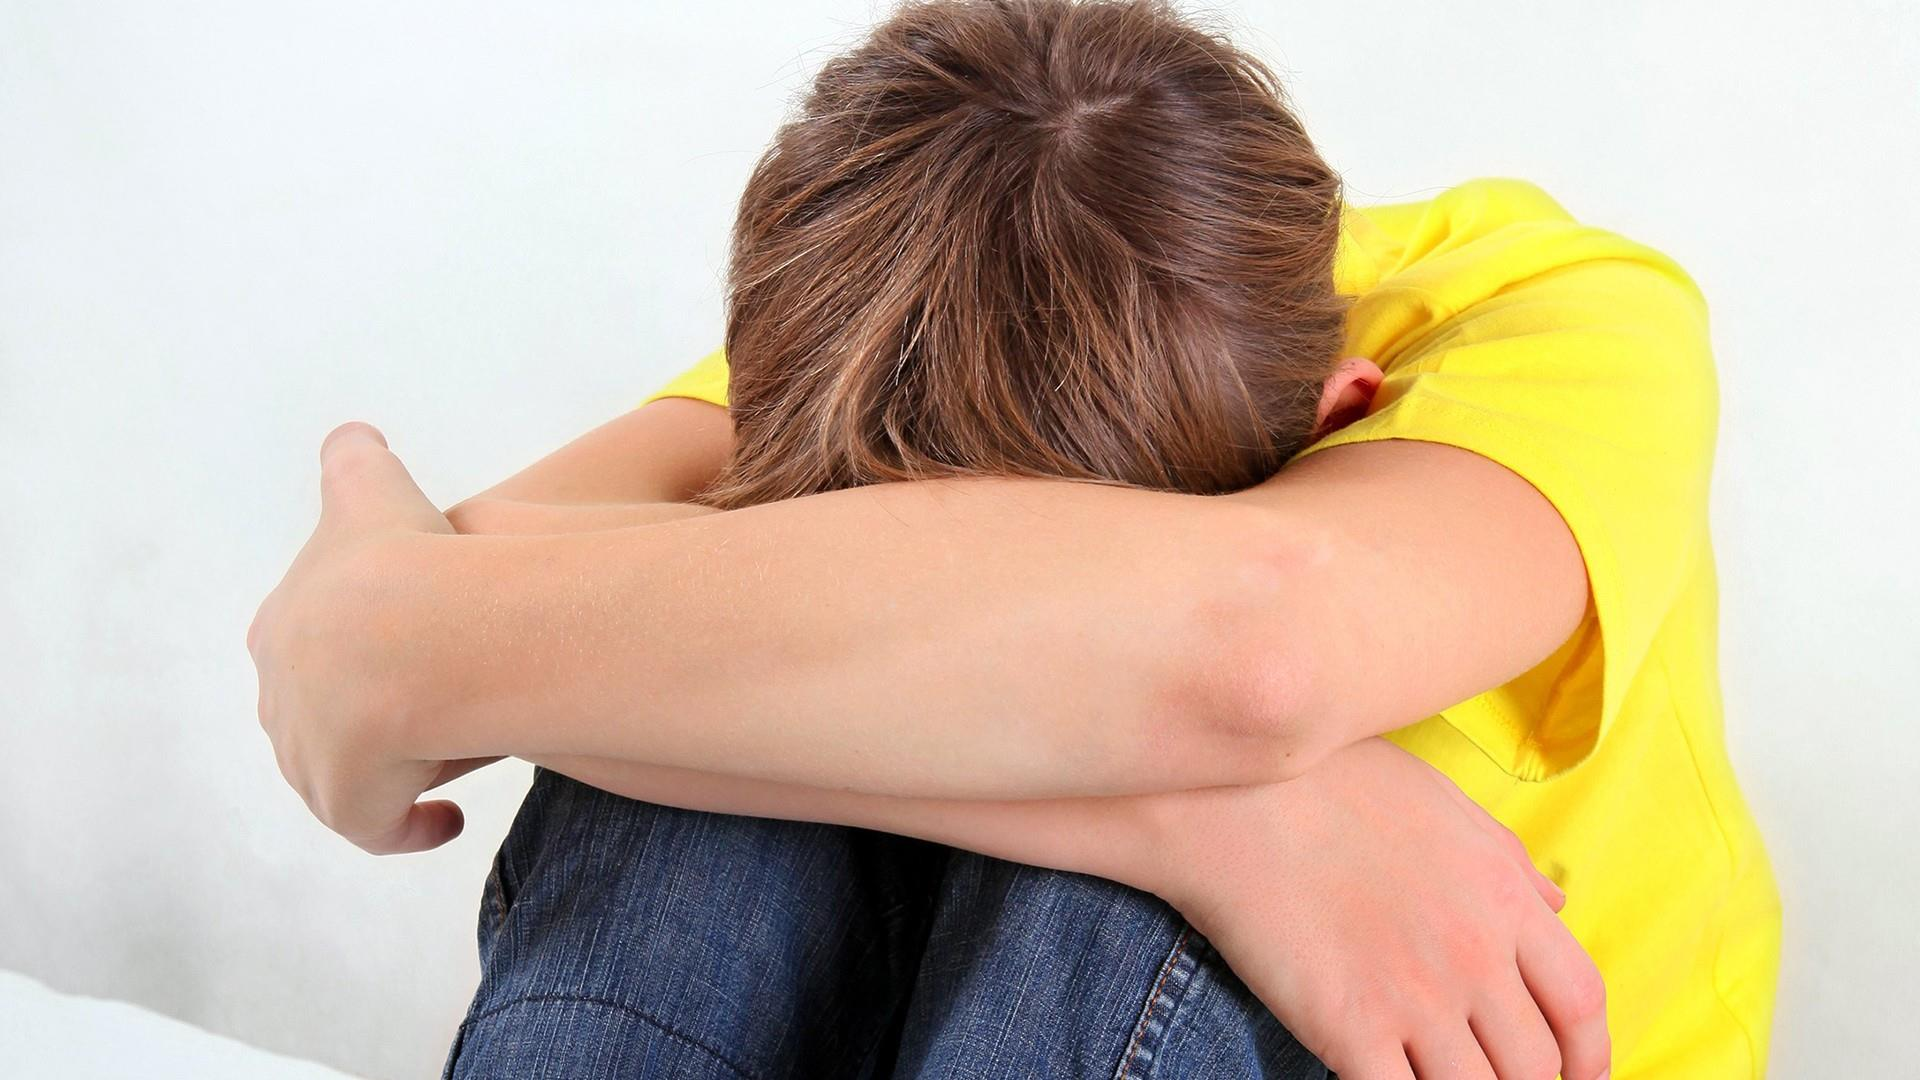 New teen depression guidelines endorse screening for 12-year-olds